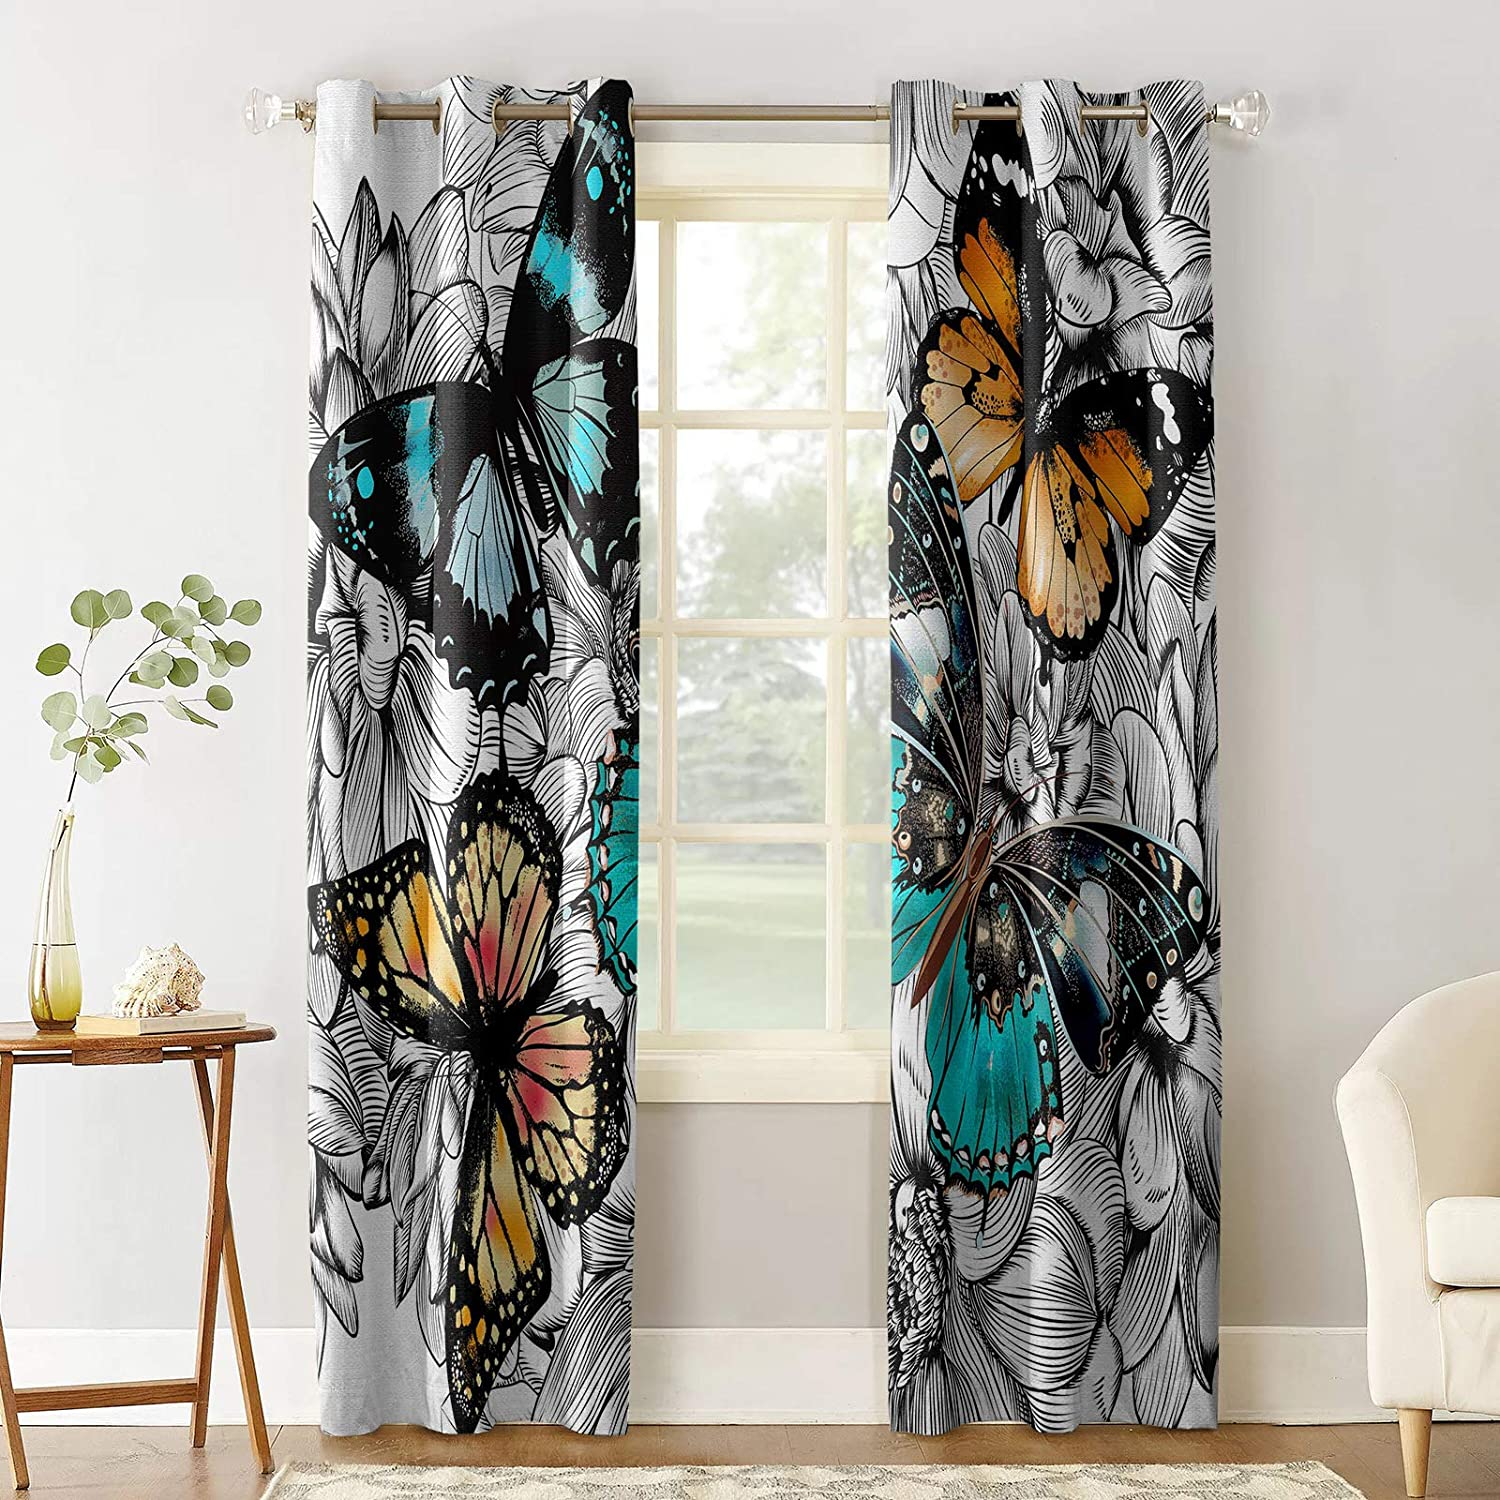 Prime Leader Blackout Curtain for Bedroom Japan's largest assortment Flowe Color Butterfly Max 90% OFF